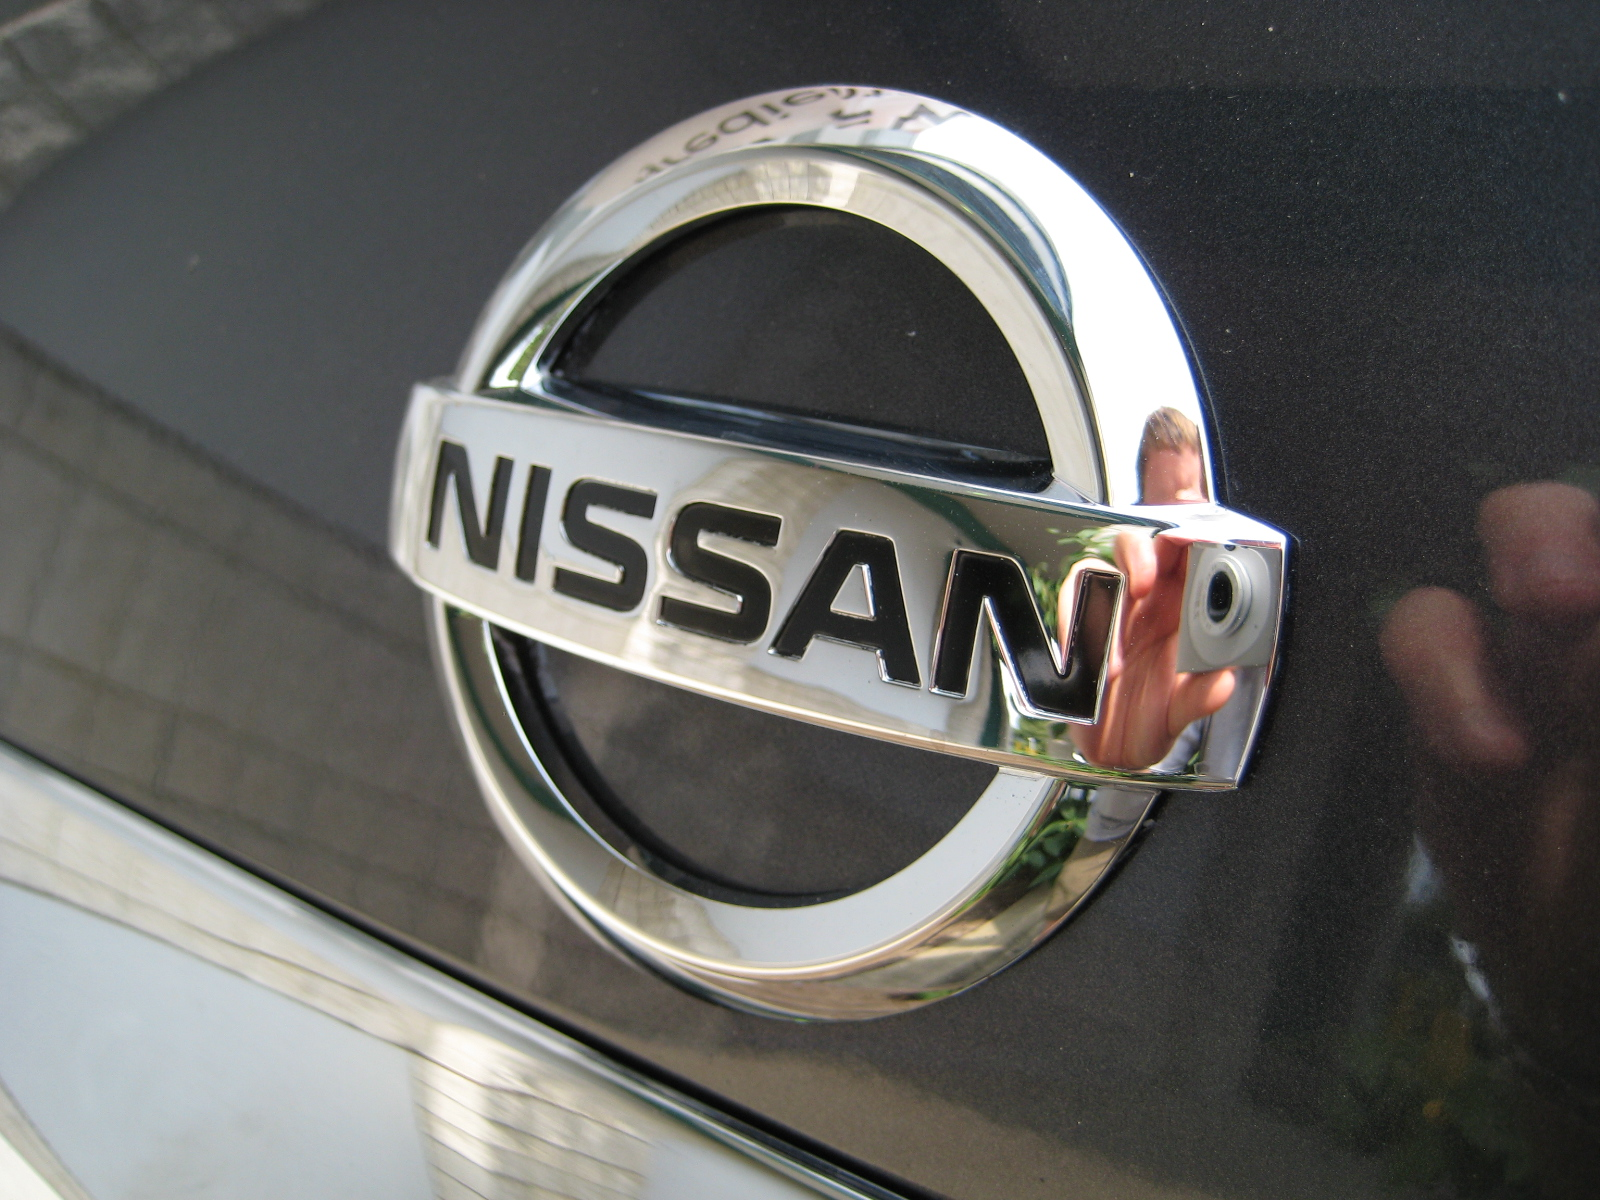 Japanese Car Brands >> Nissan Logo, Nissan Car Symbol Meaning and History | Car ...